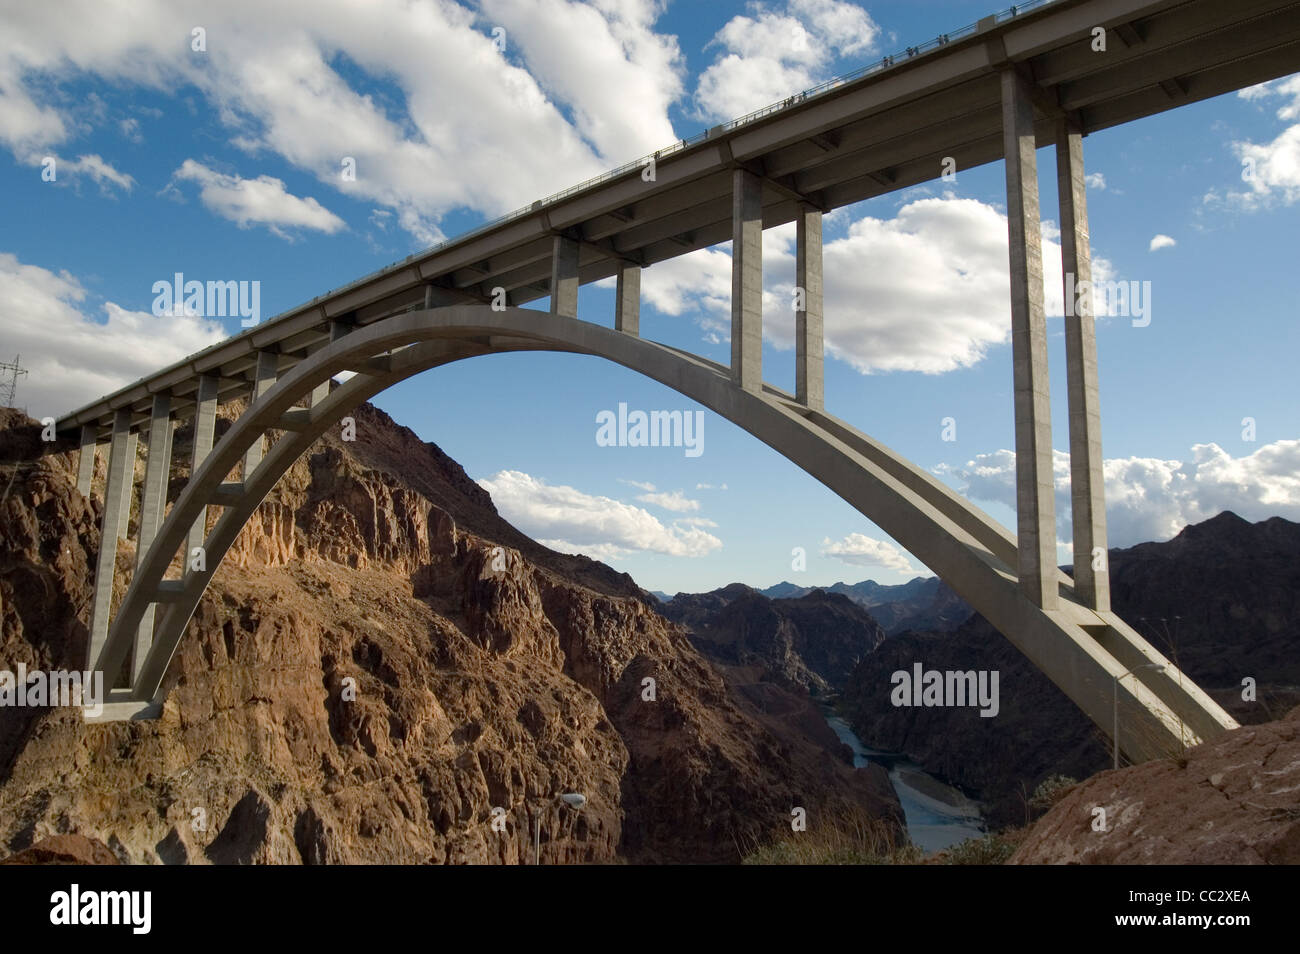 Hoover Damn bridge of Nevada USA. A fine example of bridge engineering and architecture. Taken on the 8th of November - Stock Image